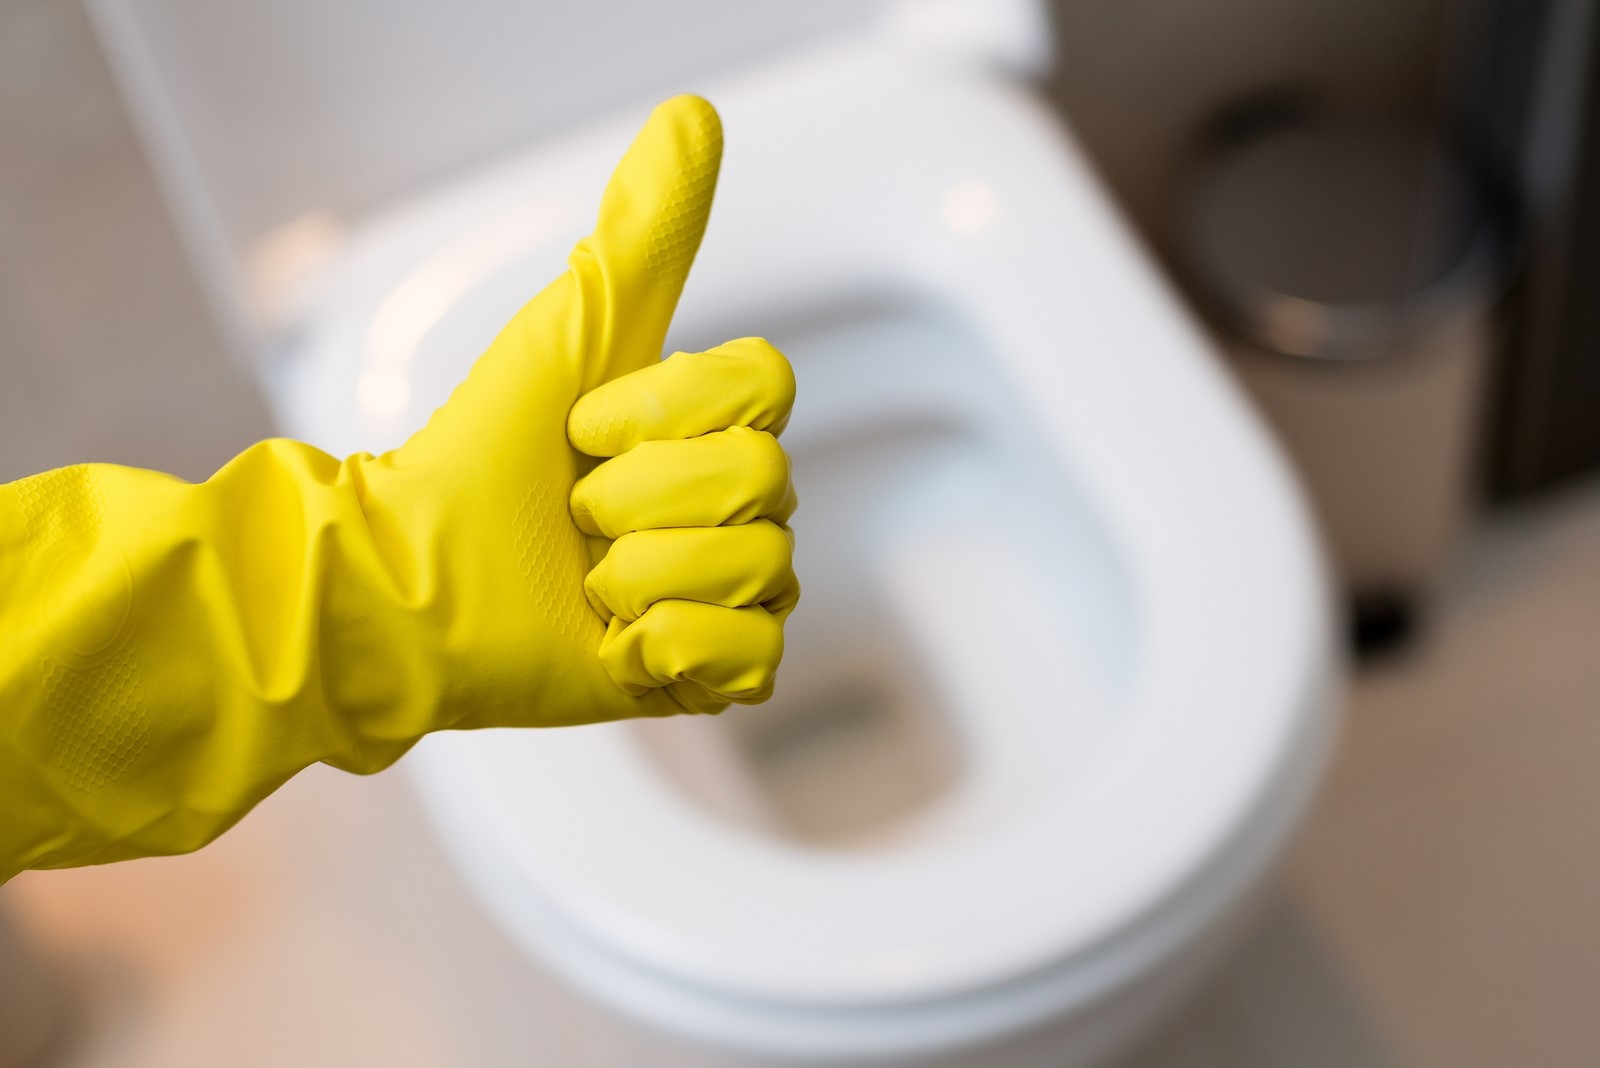 Toilet Maintenance Tips to Keep It Going for Longer